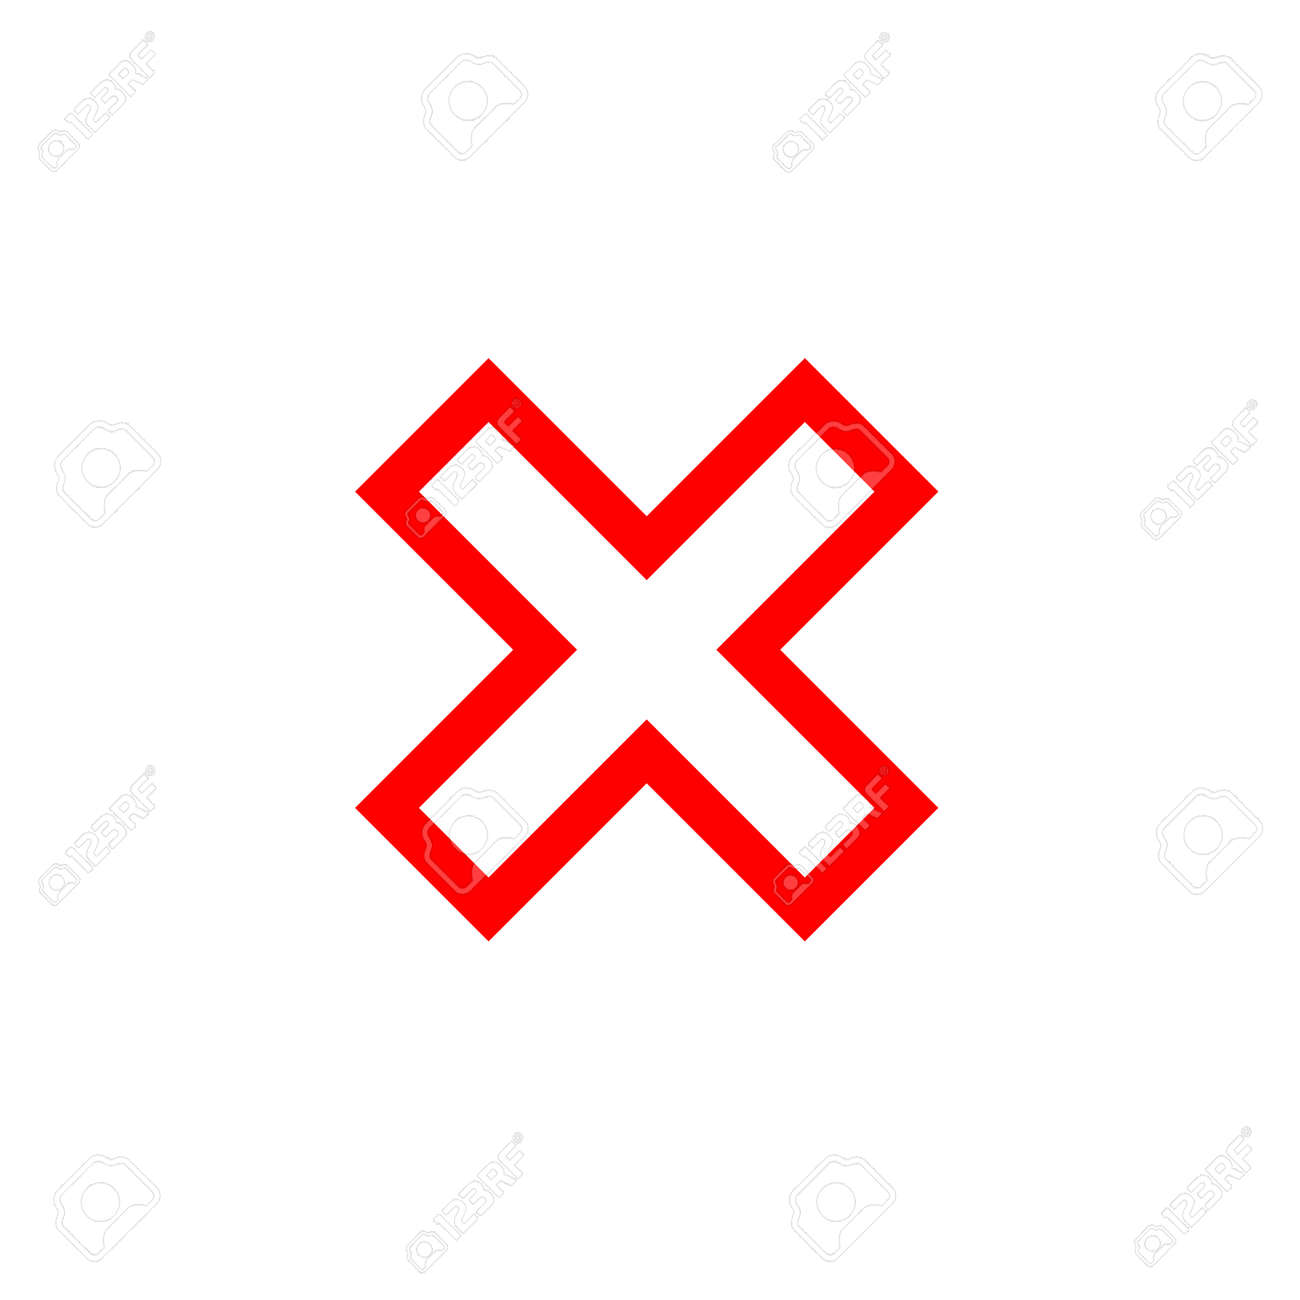 Cross sign element  Red X icon isolated on white background